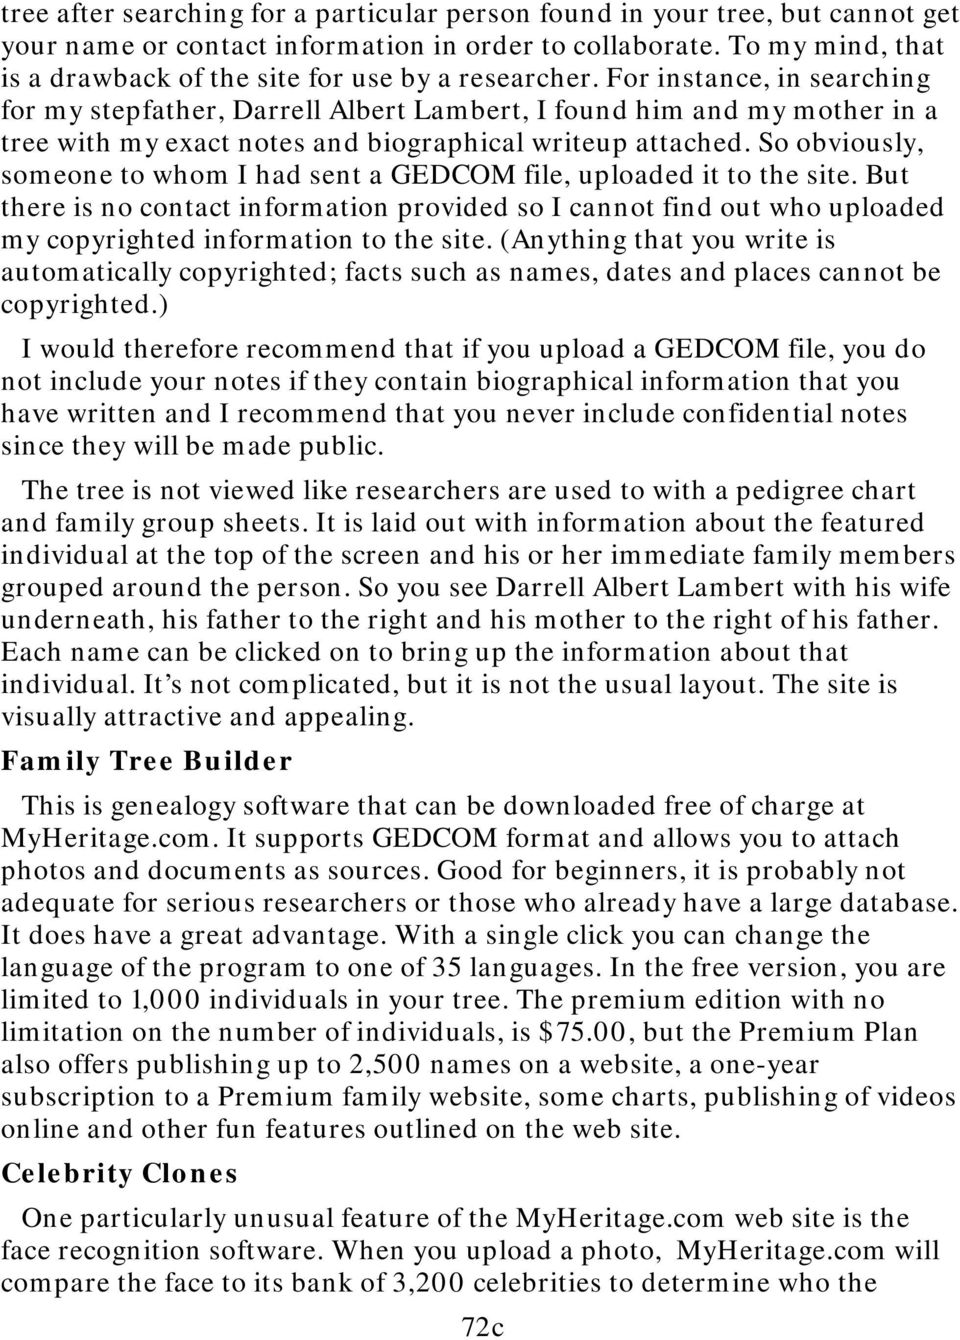 For instance, in searching for my stepfather, Darrell Albert Lambert, I found him and my mother in a tree with my exact notes and biographical writeup attached.